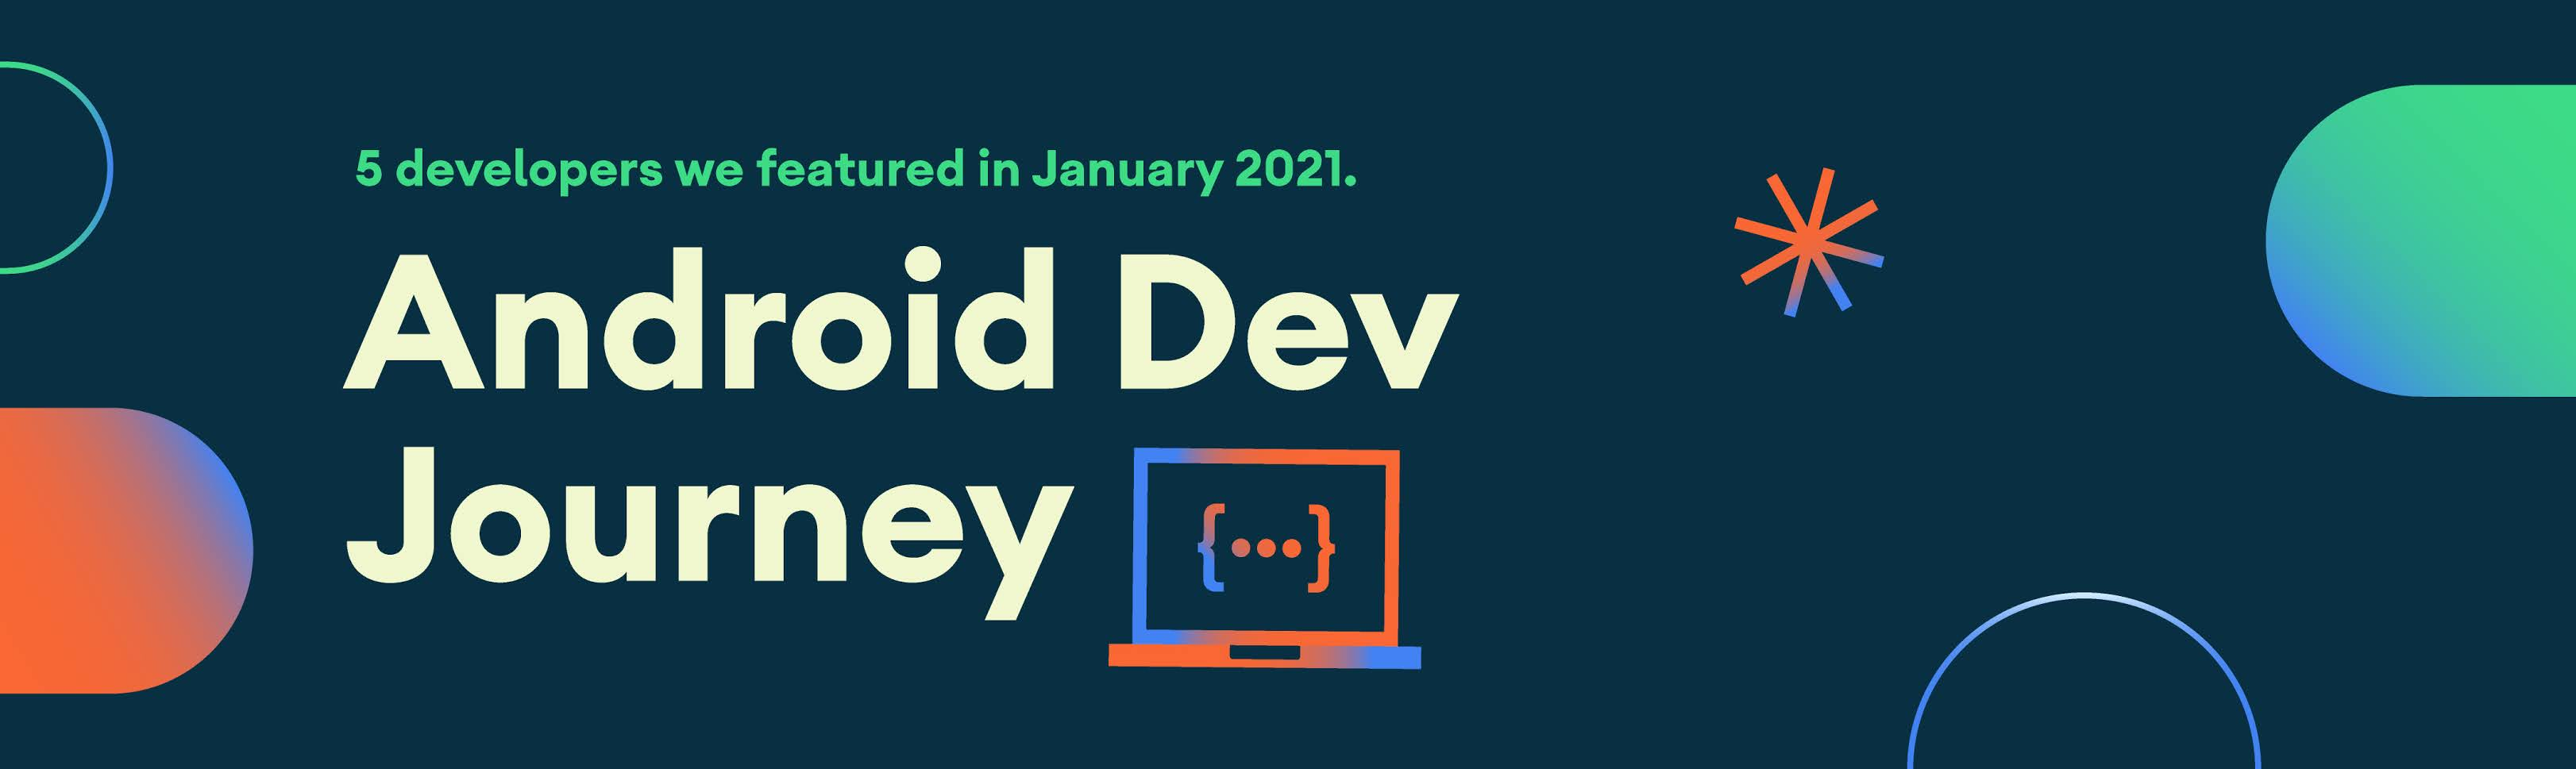 Header image with text saying Android Dev Journey